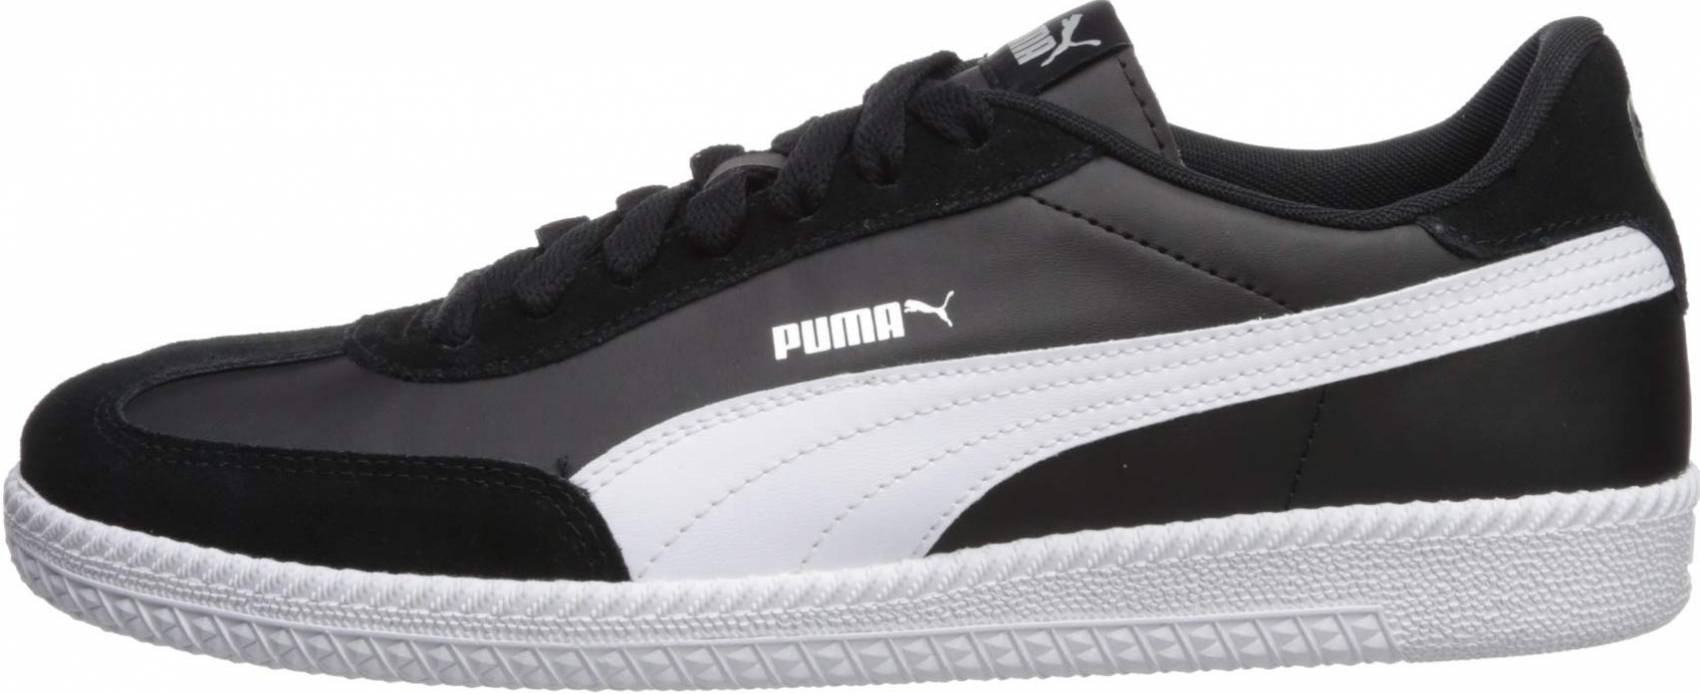 Only $41 + Review of Puma Astro Cup SL